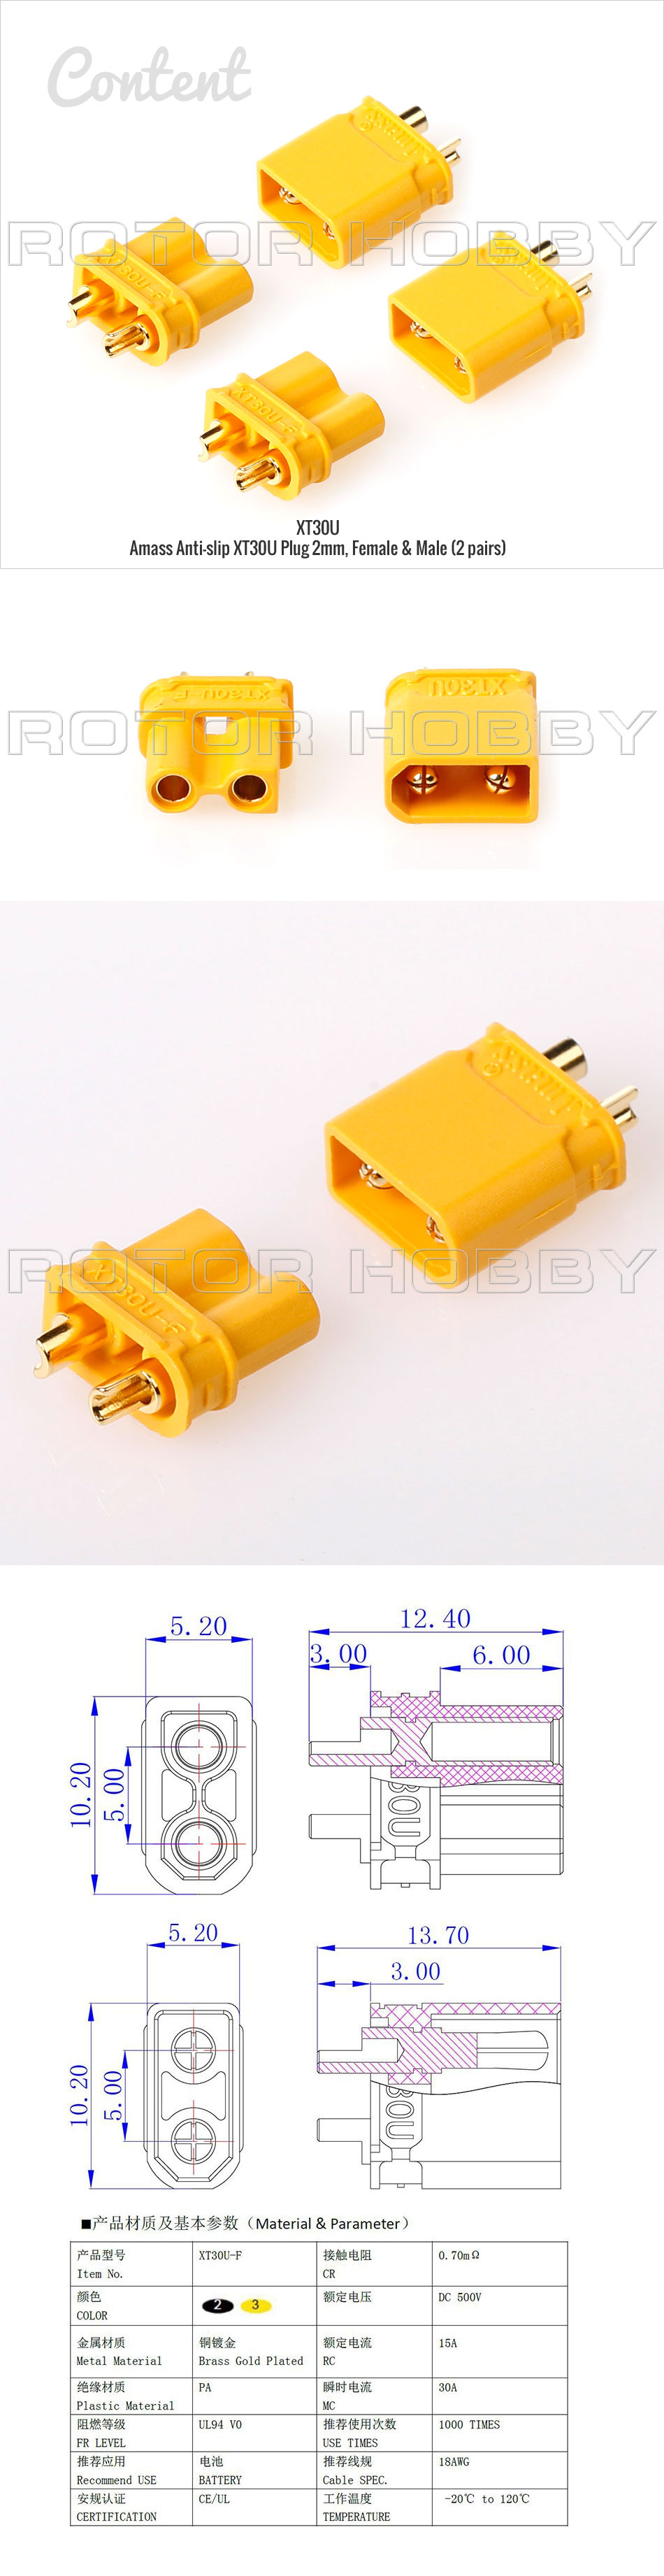 Amass Anti-slip XT30U Plug 2mm